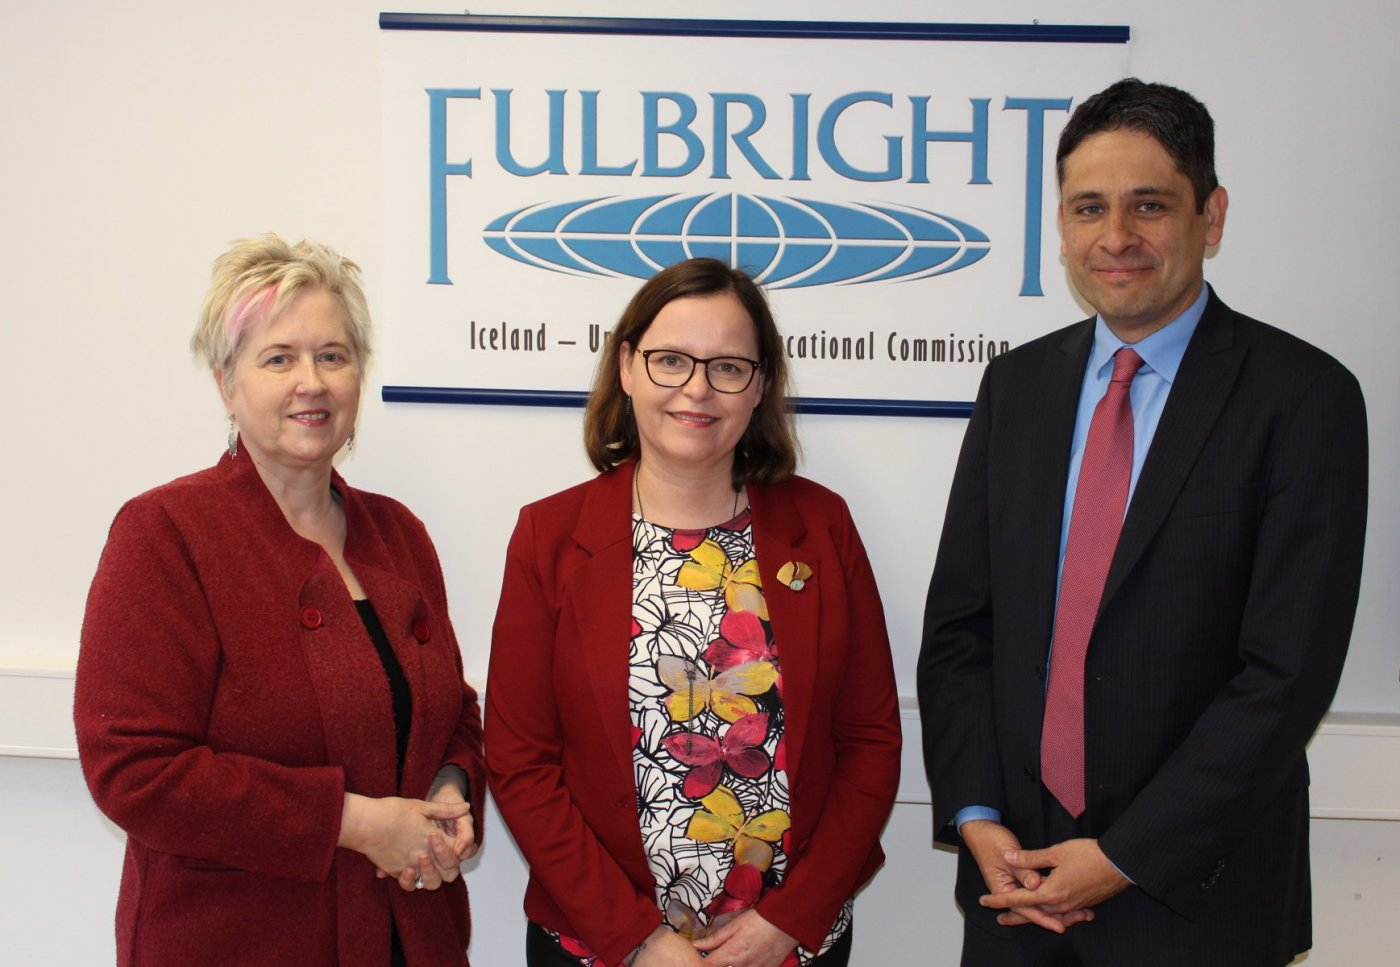 Dr. Lára Jóhannsdóttir (in the middle) with Belinda Theriault, Executive Director of the Icelandic Fulbright Commission, and Oscar Avila from the US embassy.